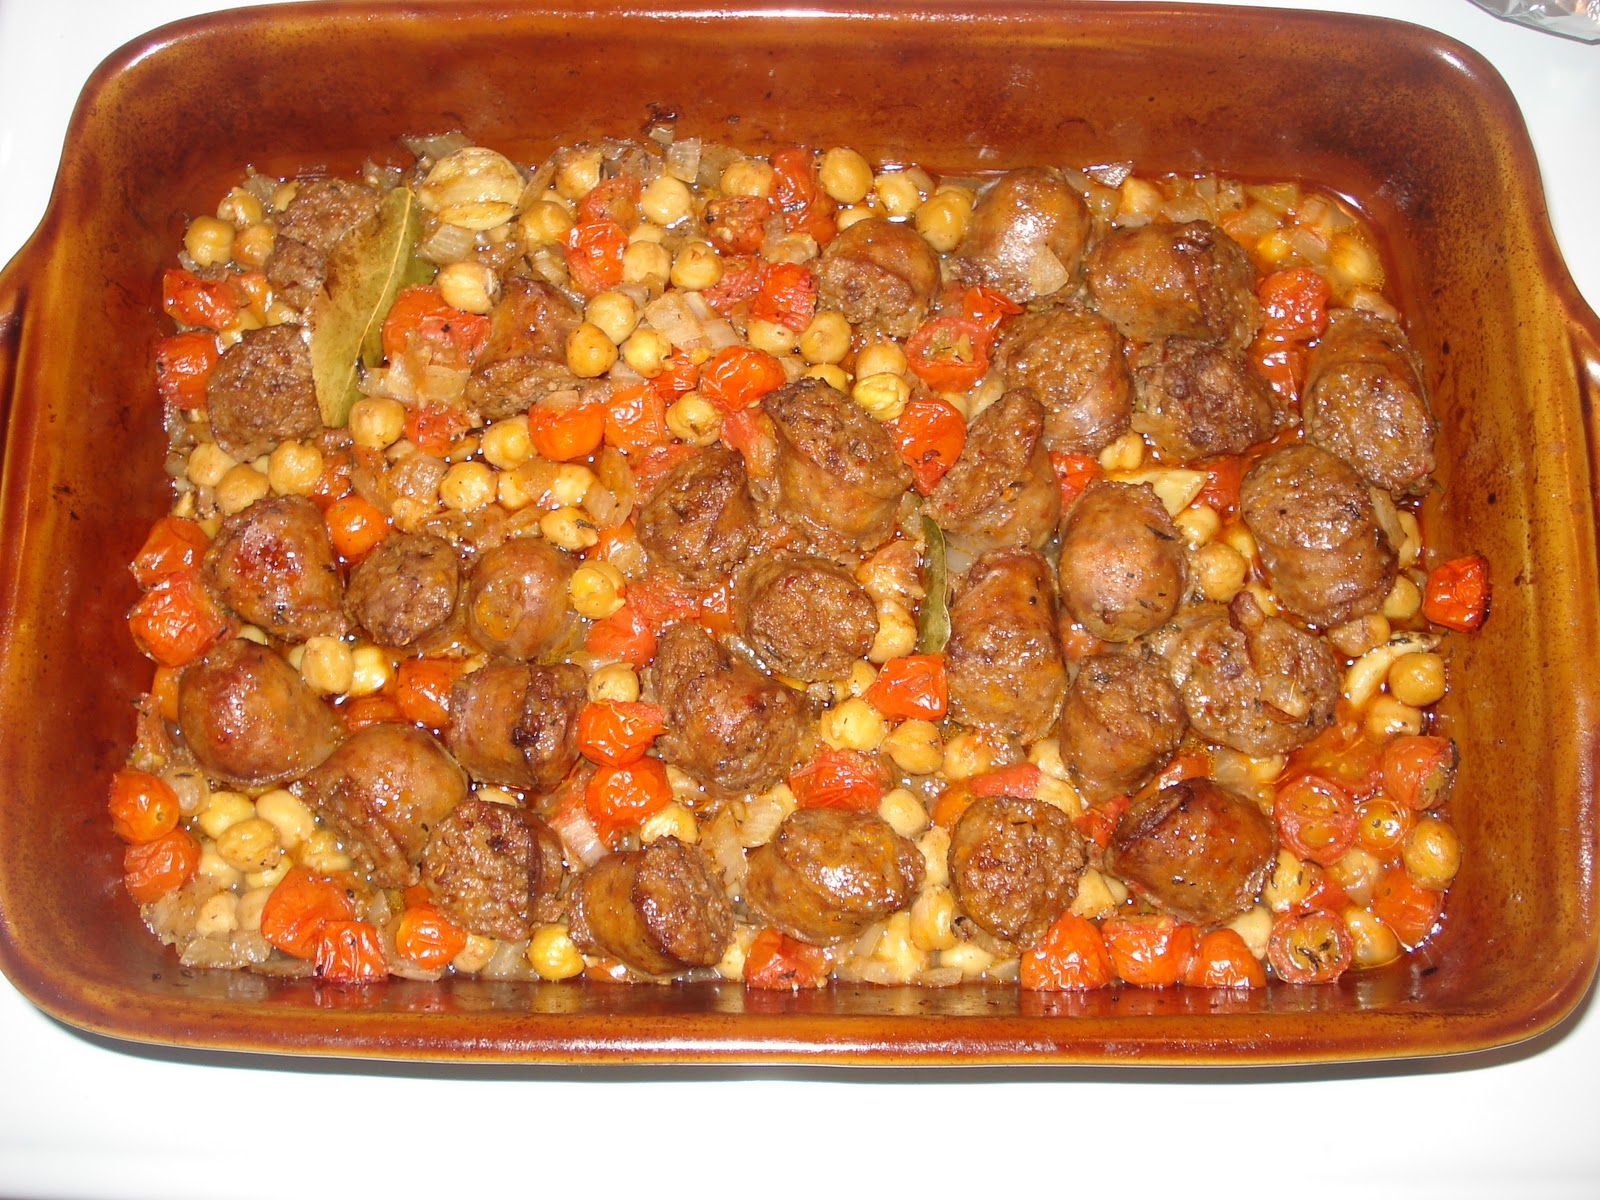 ... sausage baked bean casserole casserole recipes yummly baked bean